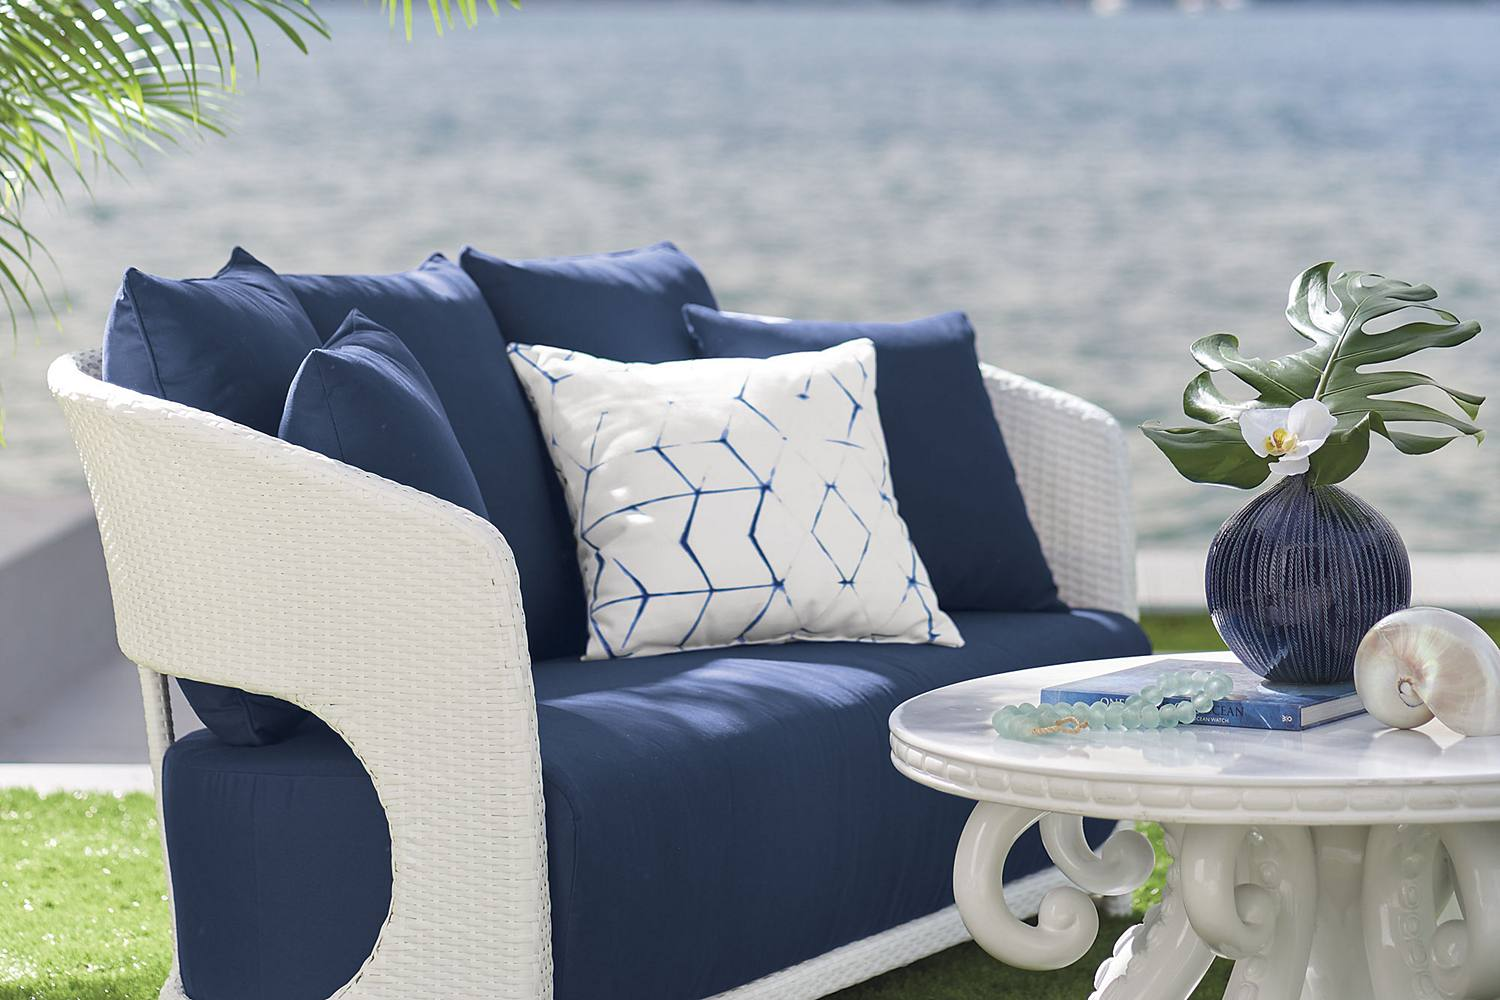 - 5 Reasons To Love Outdoor Deep Seating - Grandin Road Blog